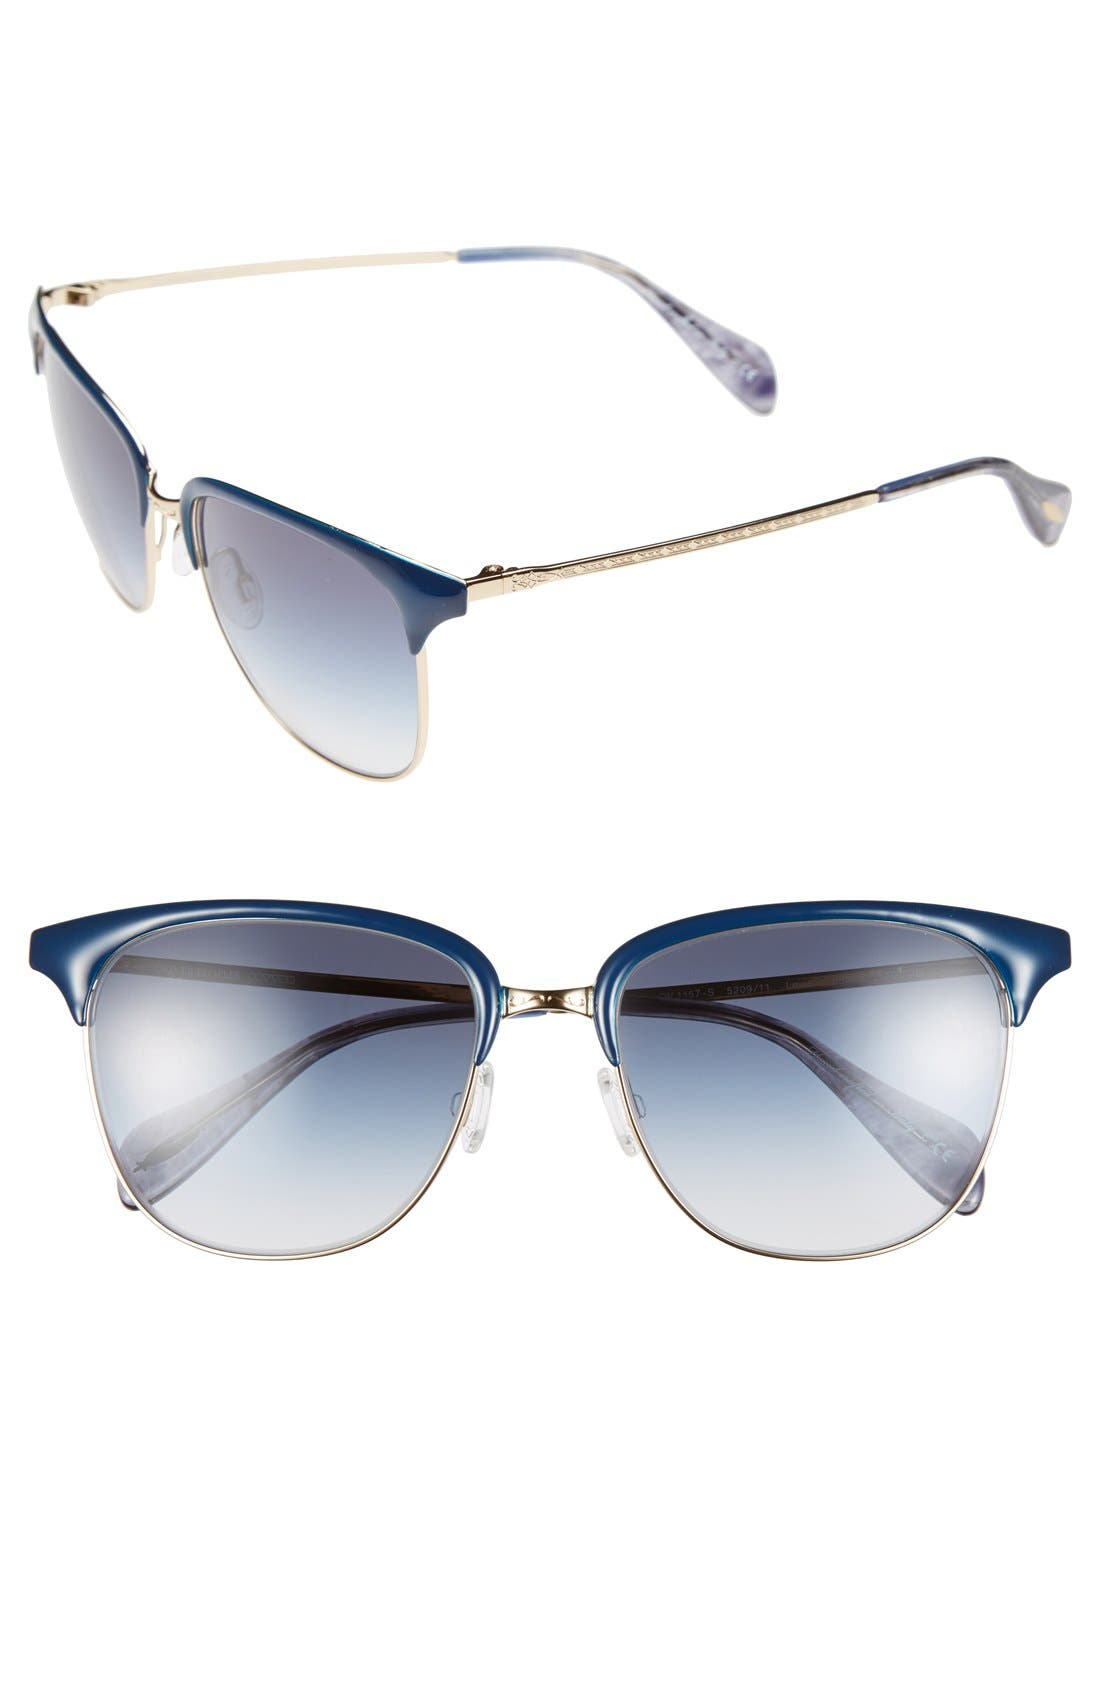 Alternate Image 1 Selected - Oliver Peoples 'Leiana' 55mm Sunglasses